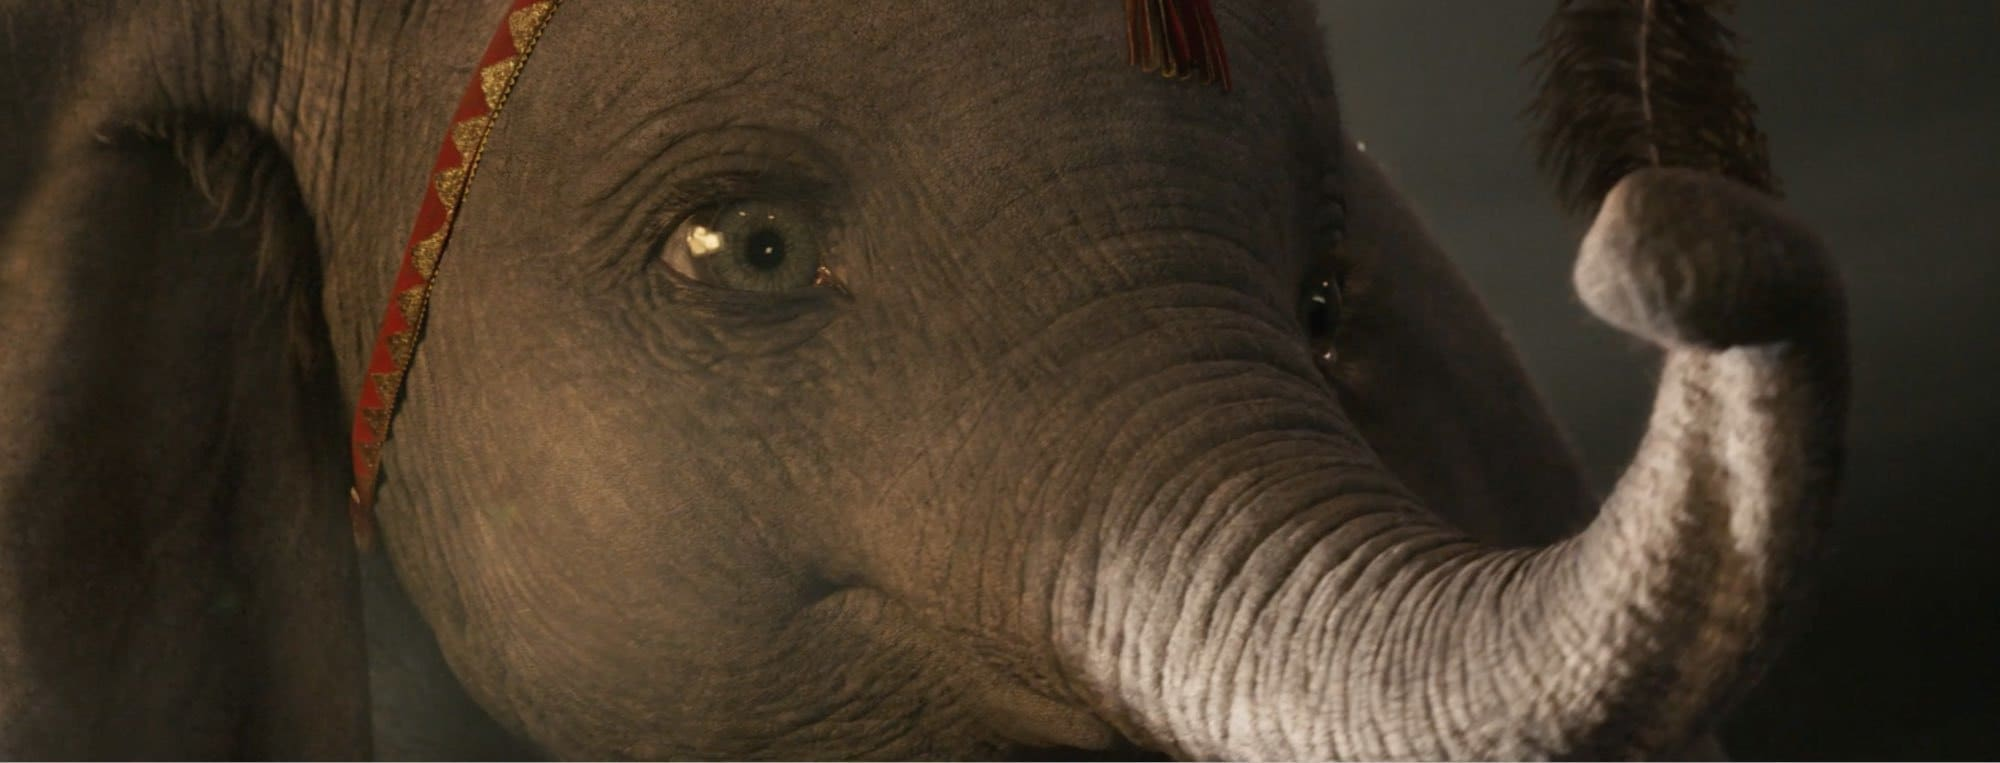 Disney Dumbo - Trailer e data di uscita